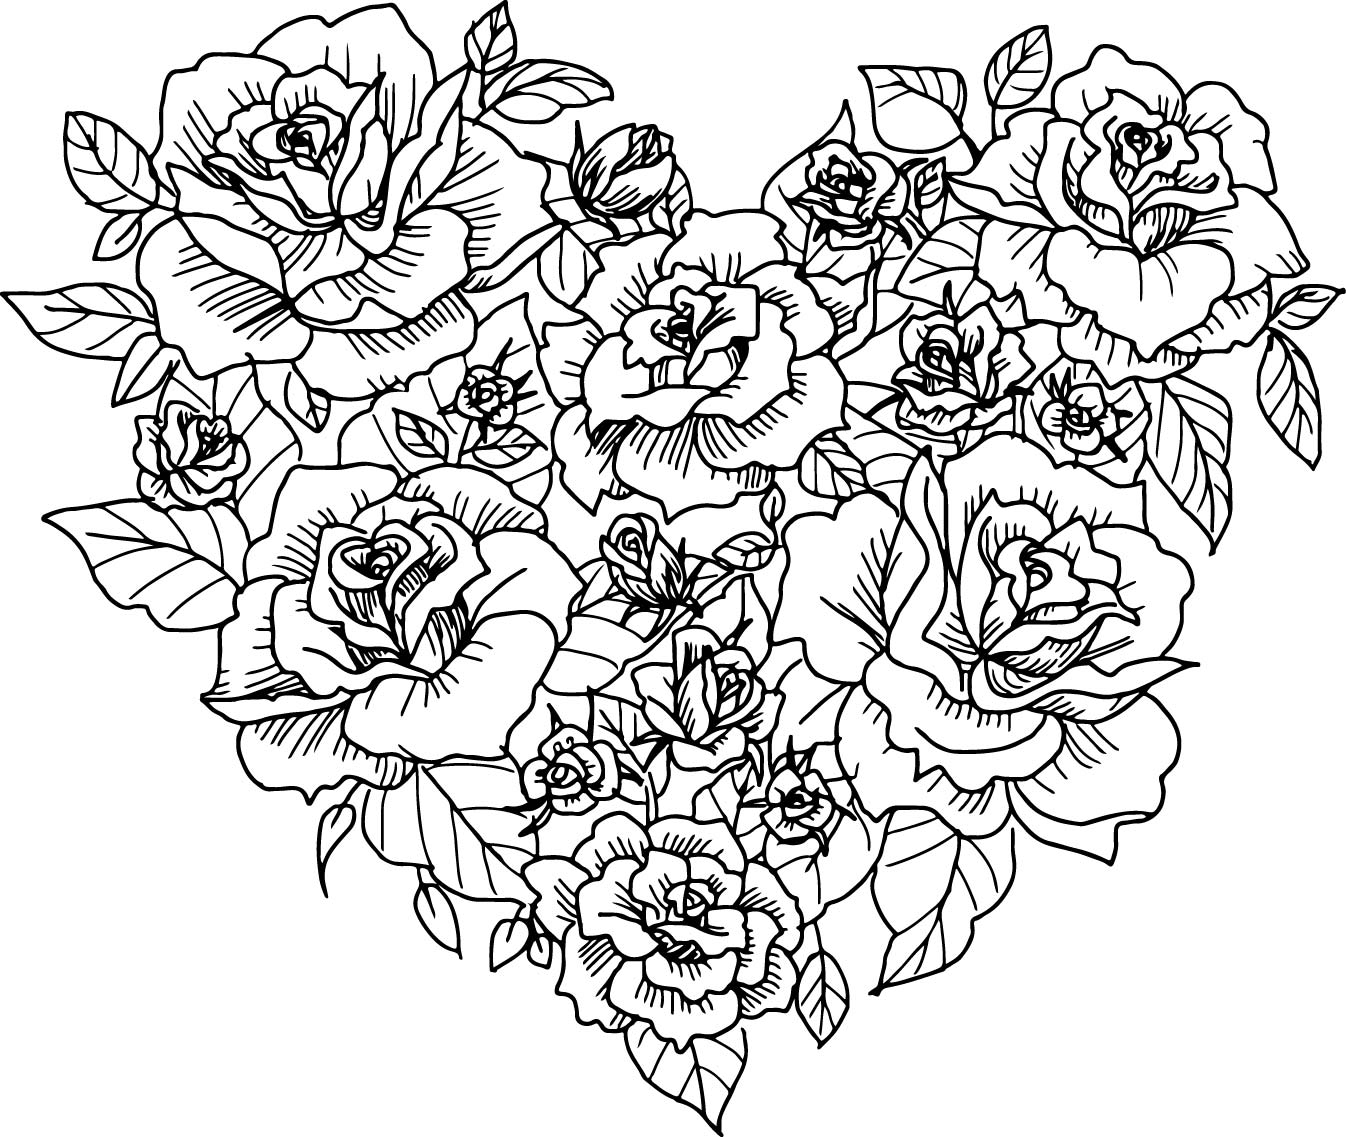 rose colouring pages coloring pages rose rose colouring pages